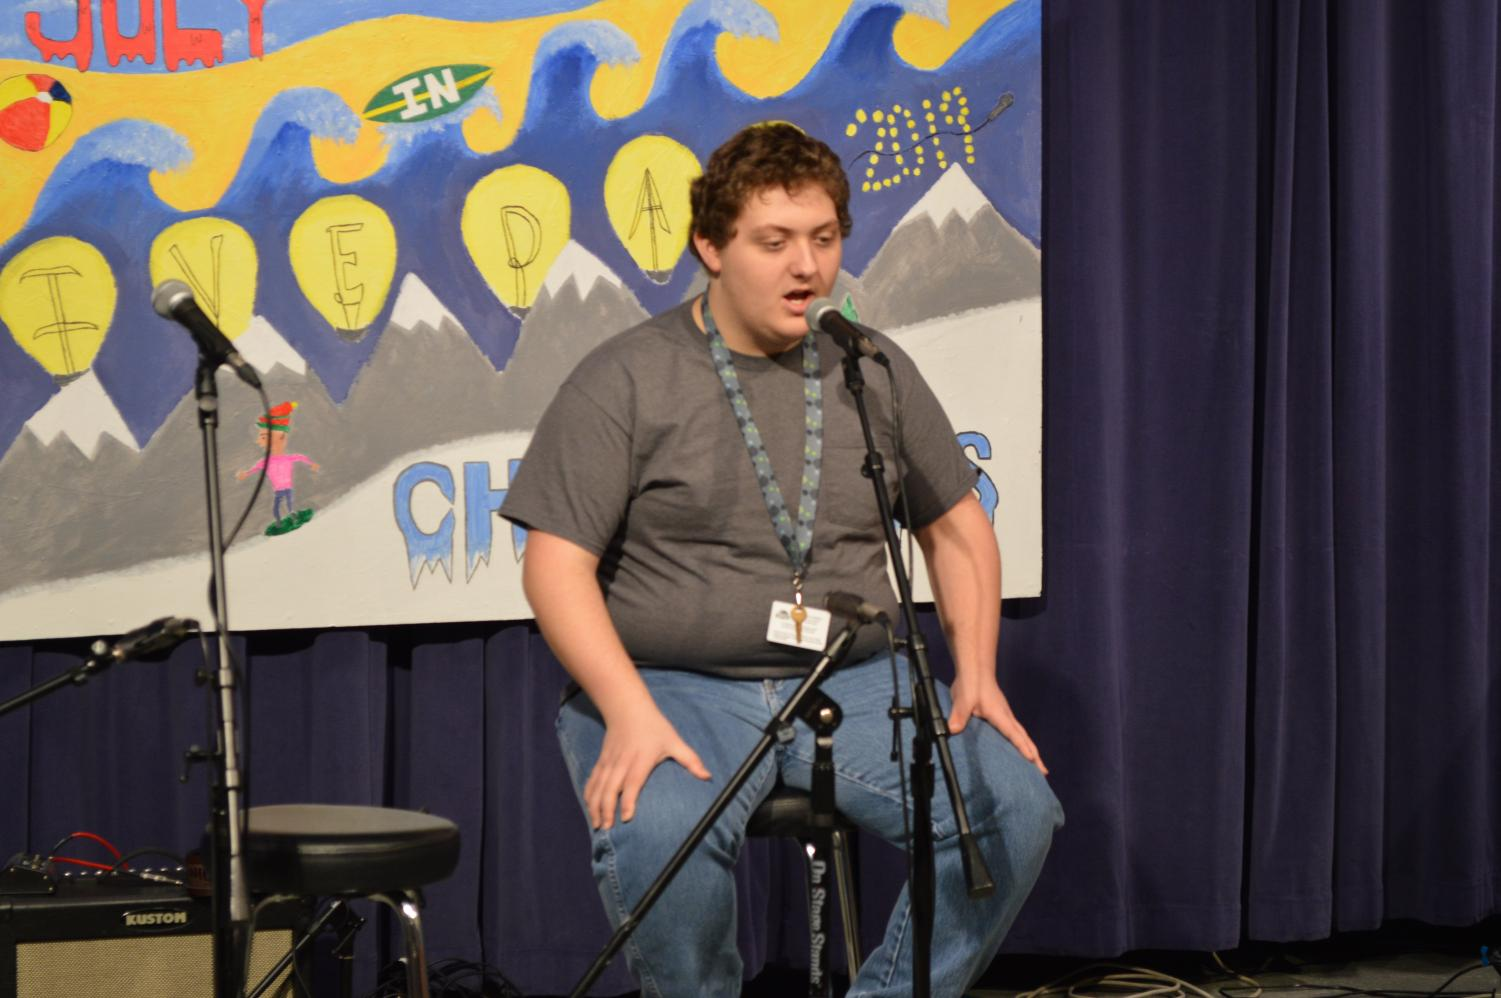 Riley Fischer, a BASH junior, performed a cover of